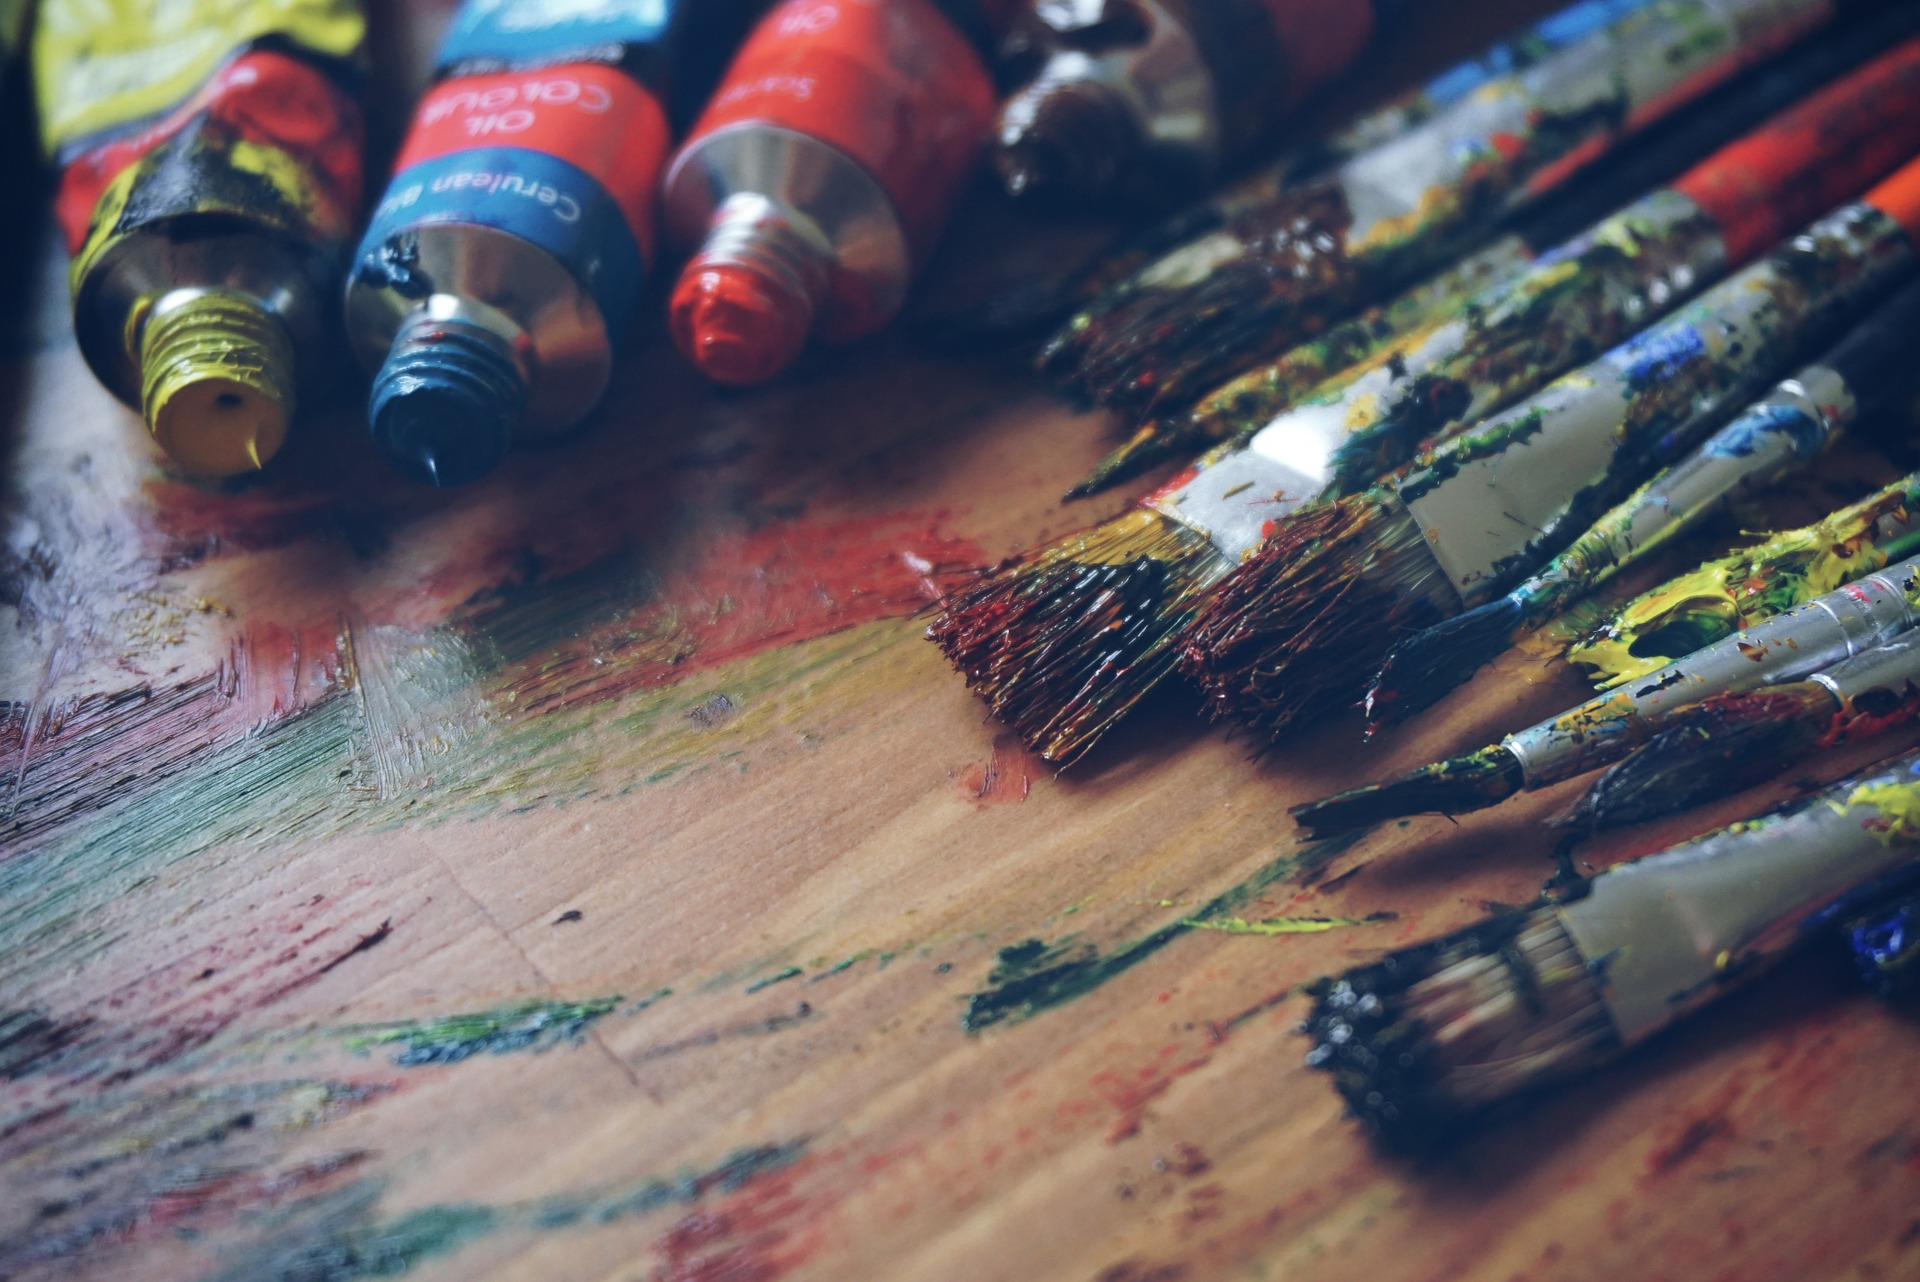 Paint and paint brushes on an art board.